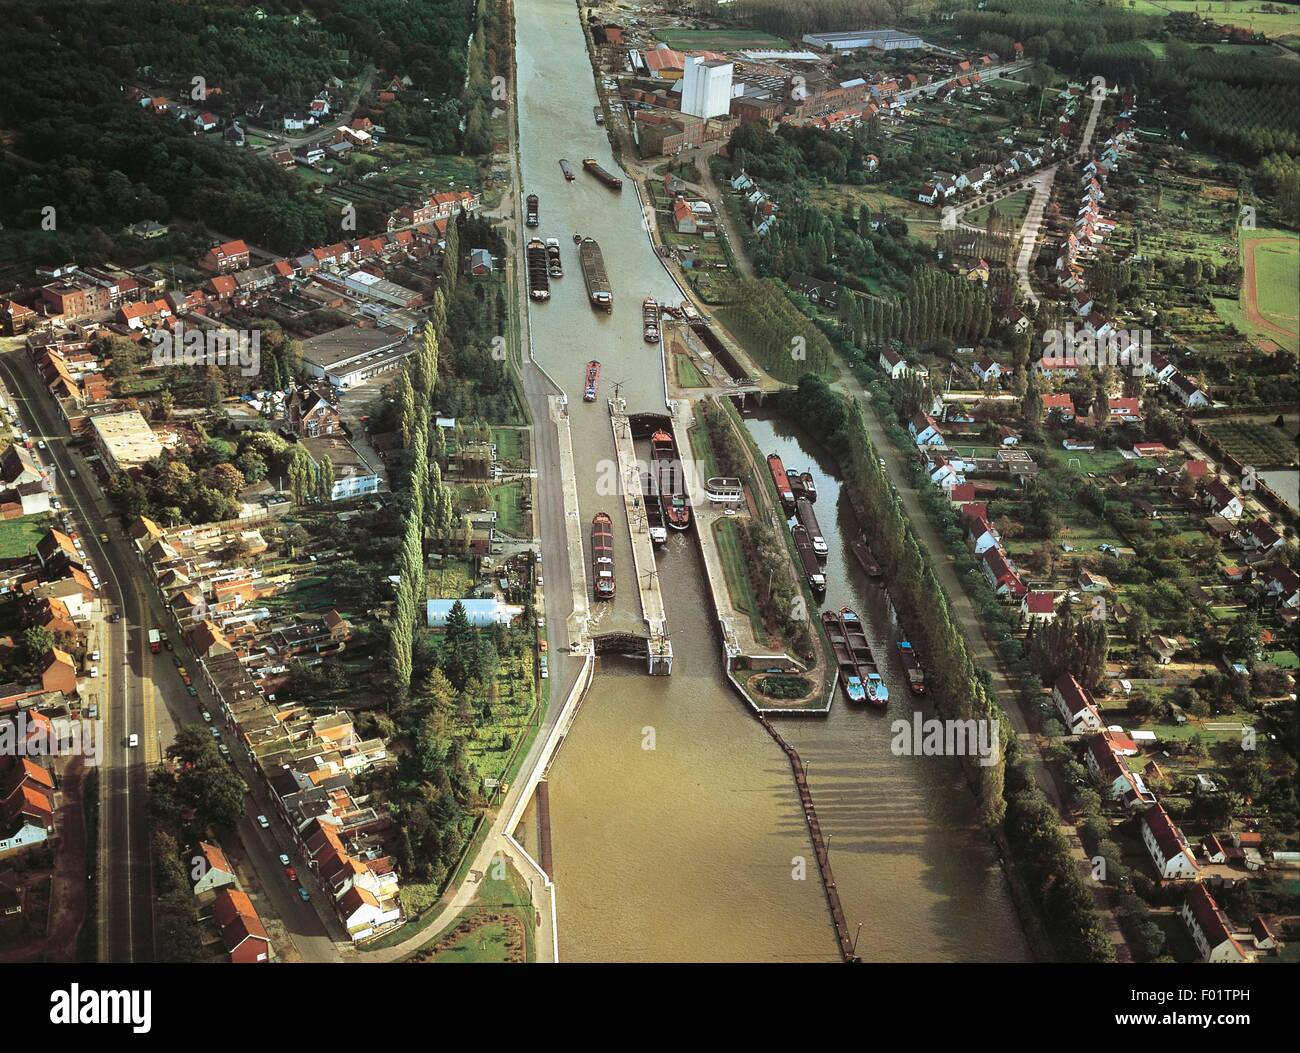 Aerial view of Albert Canal derived from the Meuse River at Antwerp - Flanders, Belgium. - Stock Image